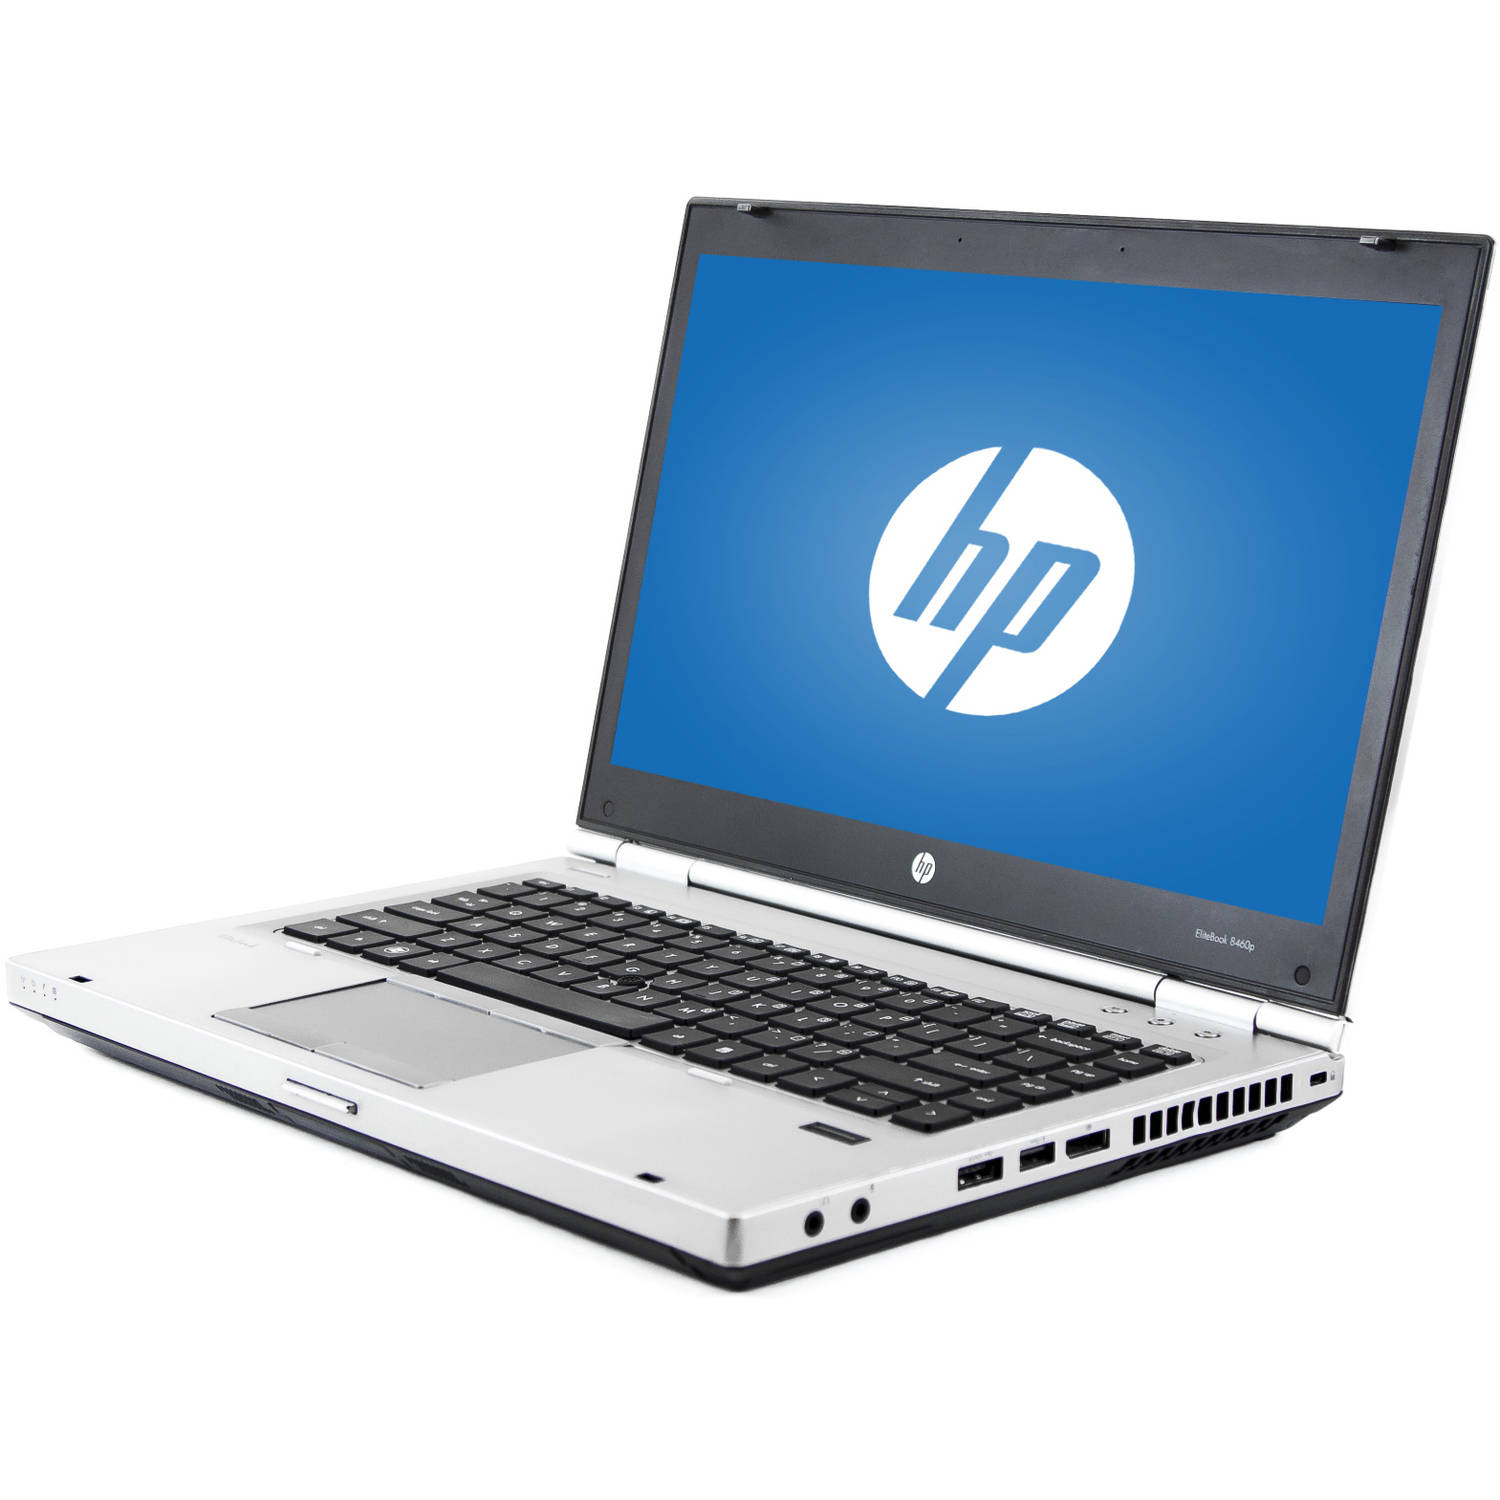 "Refurbished HP Silver 14"" EliteBook 8460P WA5-0941 Laptop PC with Intel Core i5-2520M Processor, 16GB Memory, 750GB Hard Drive and Windows 10 Pro"